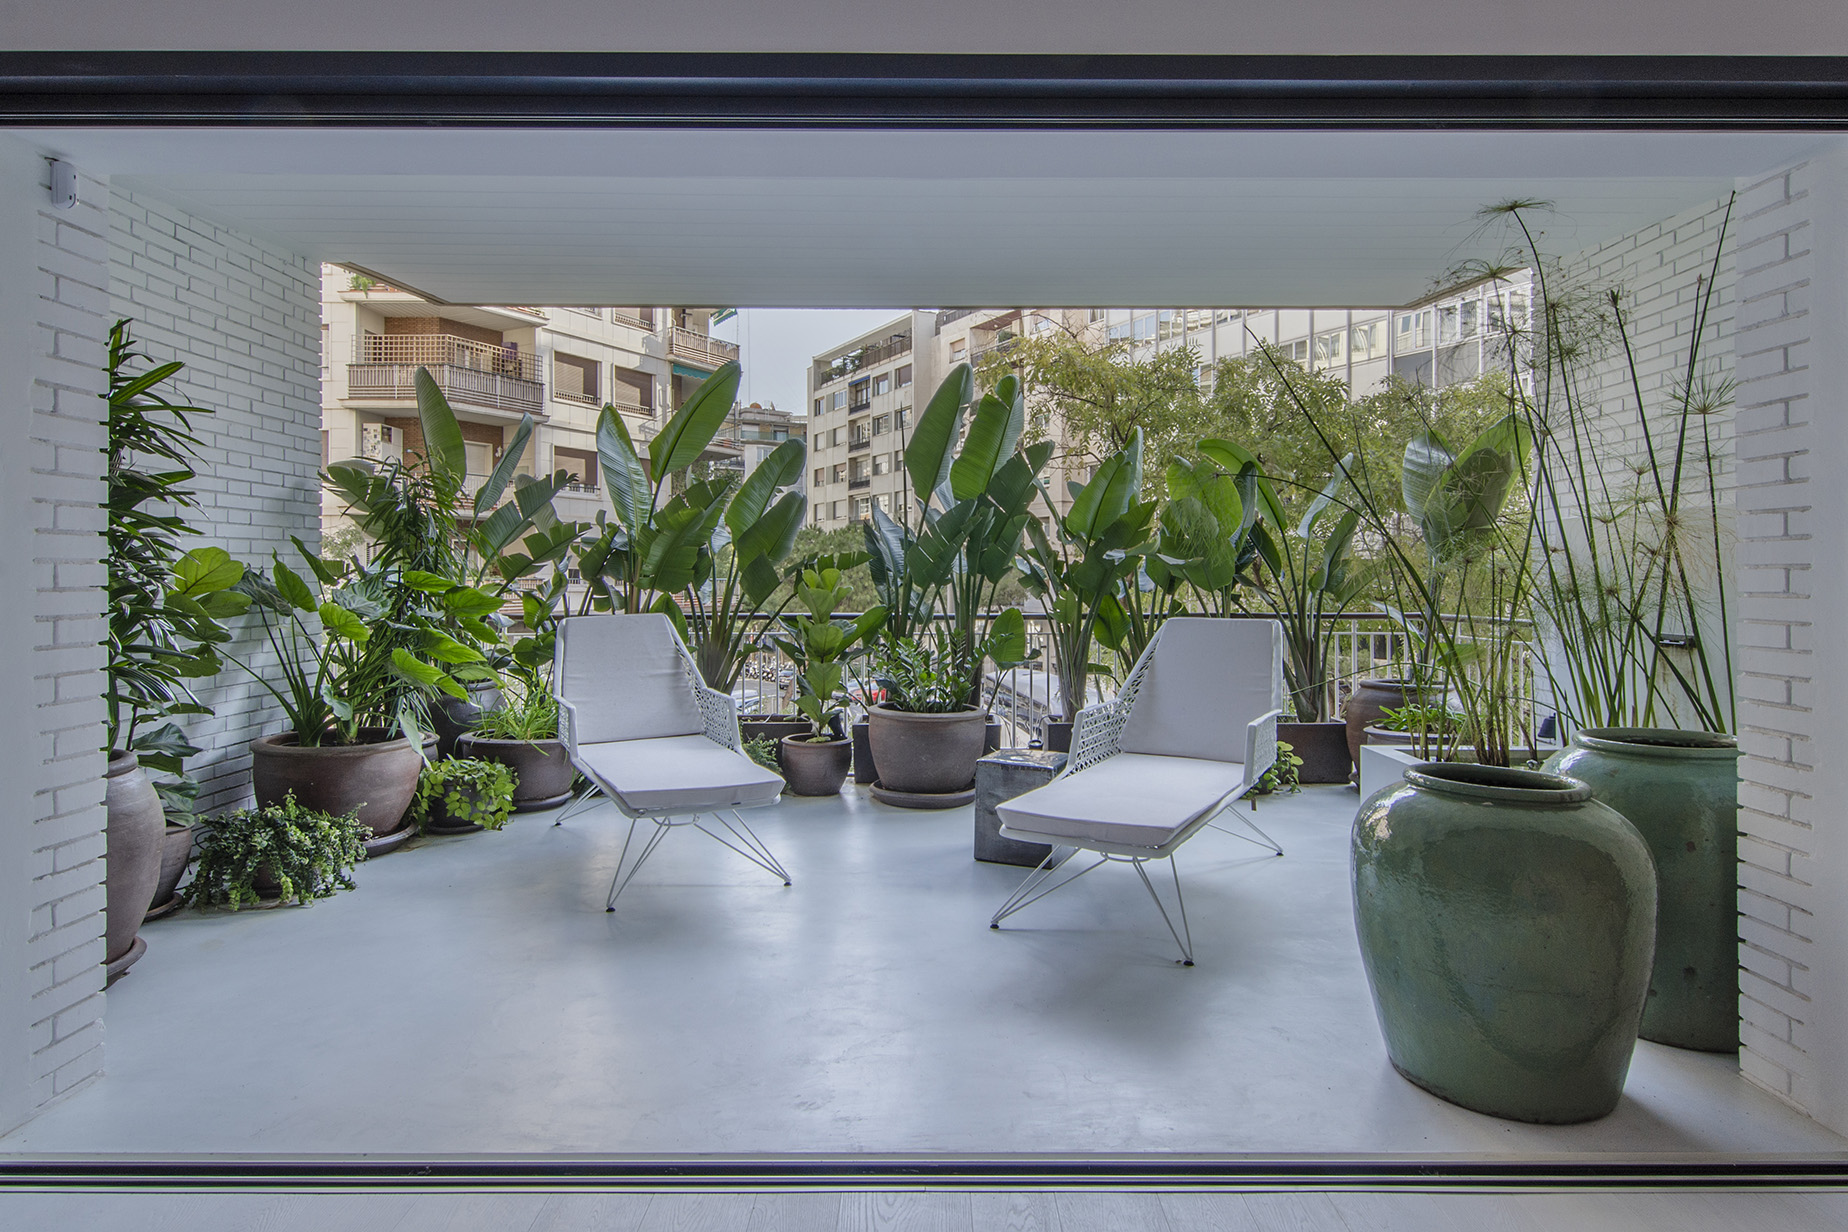 Apartment for Sale at Spectacular Renovated Apartment in Turo Park Barcelona City, Barcelona, 08034 Spain